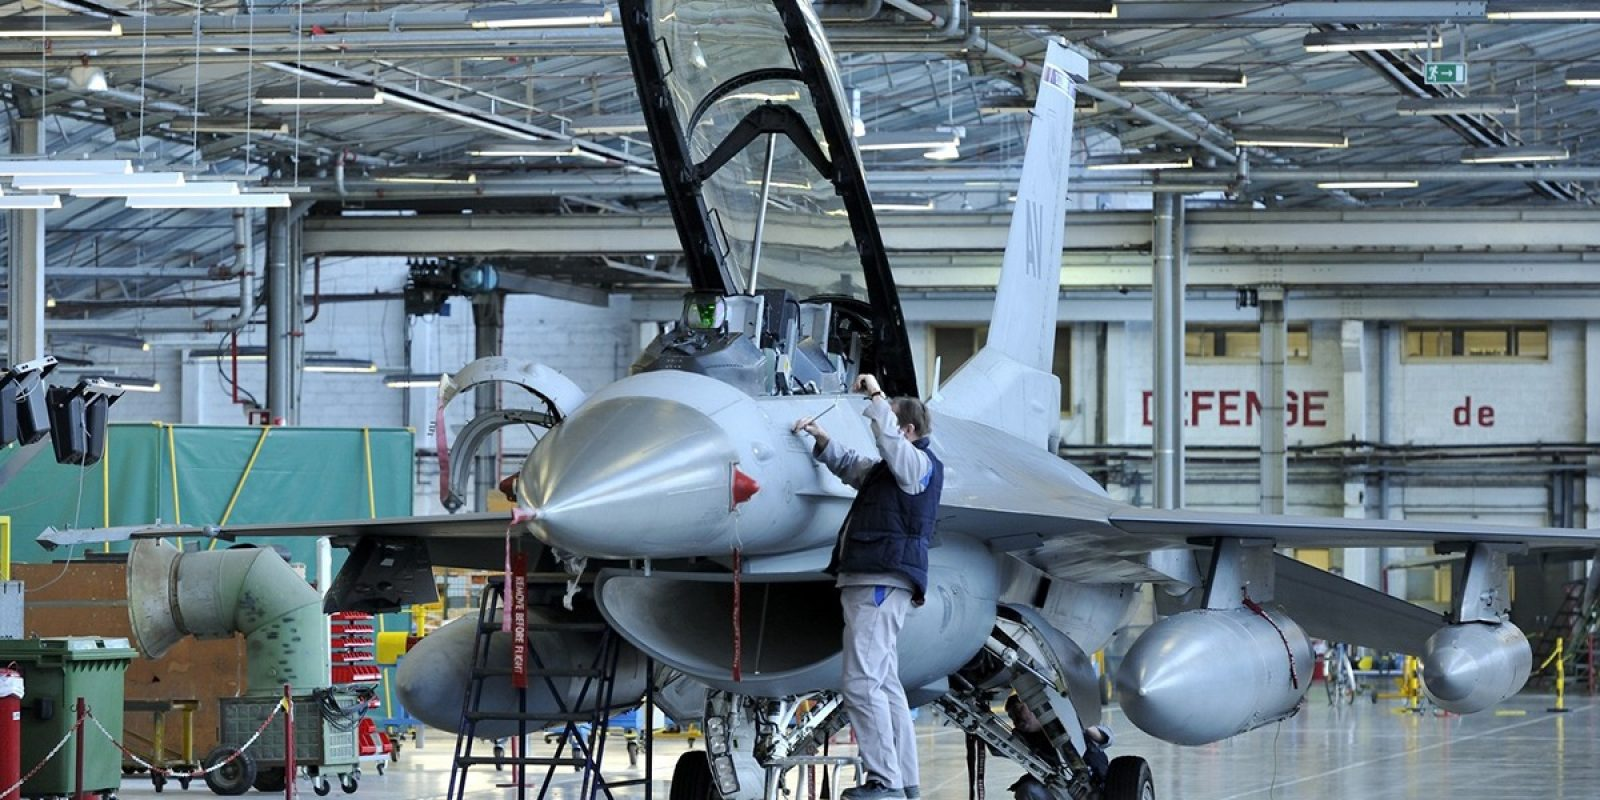 SABCA est très fière d'être le seul fournisseur européen de services MRO-U au niveau « depot level » pour les F-16 de l'US Air Force. Un F-16DG du 31 Fighter Wing d'Aviano est ici photographié en travaux dans les hangars carolorégiens. (Photo SABCA)